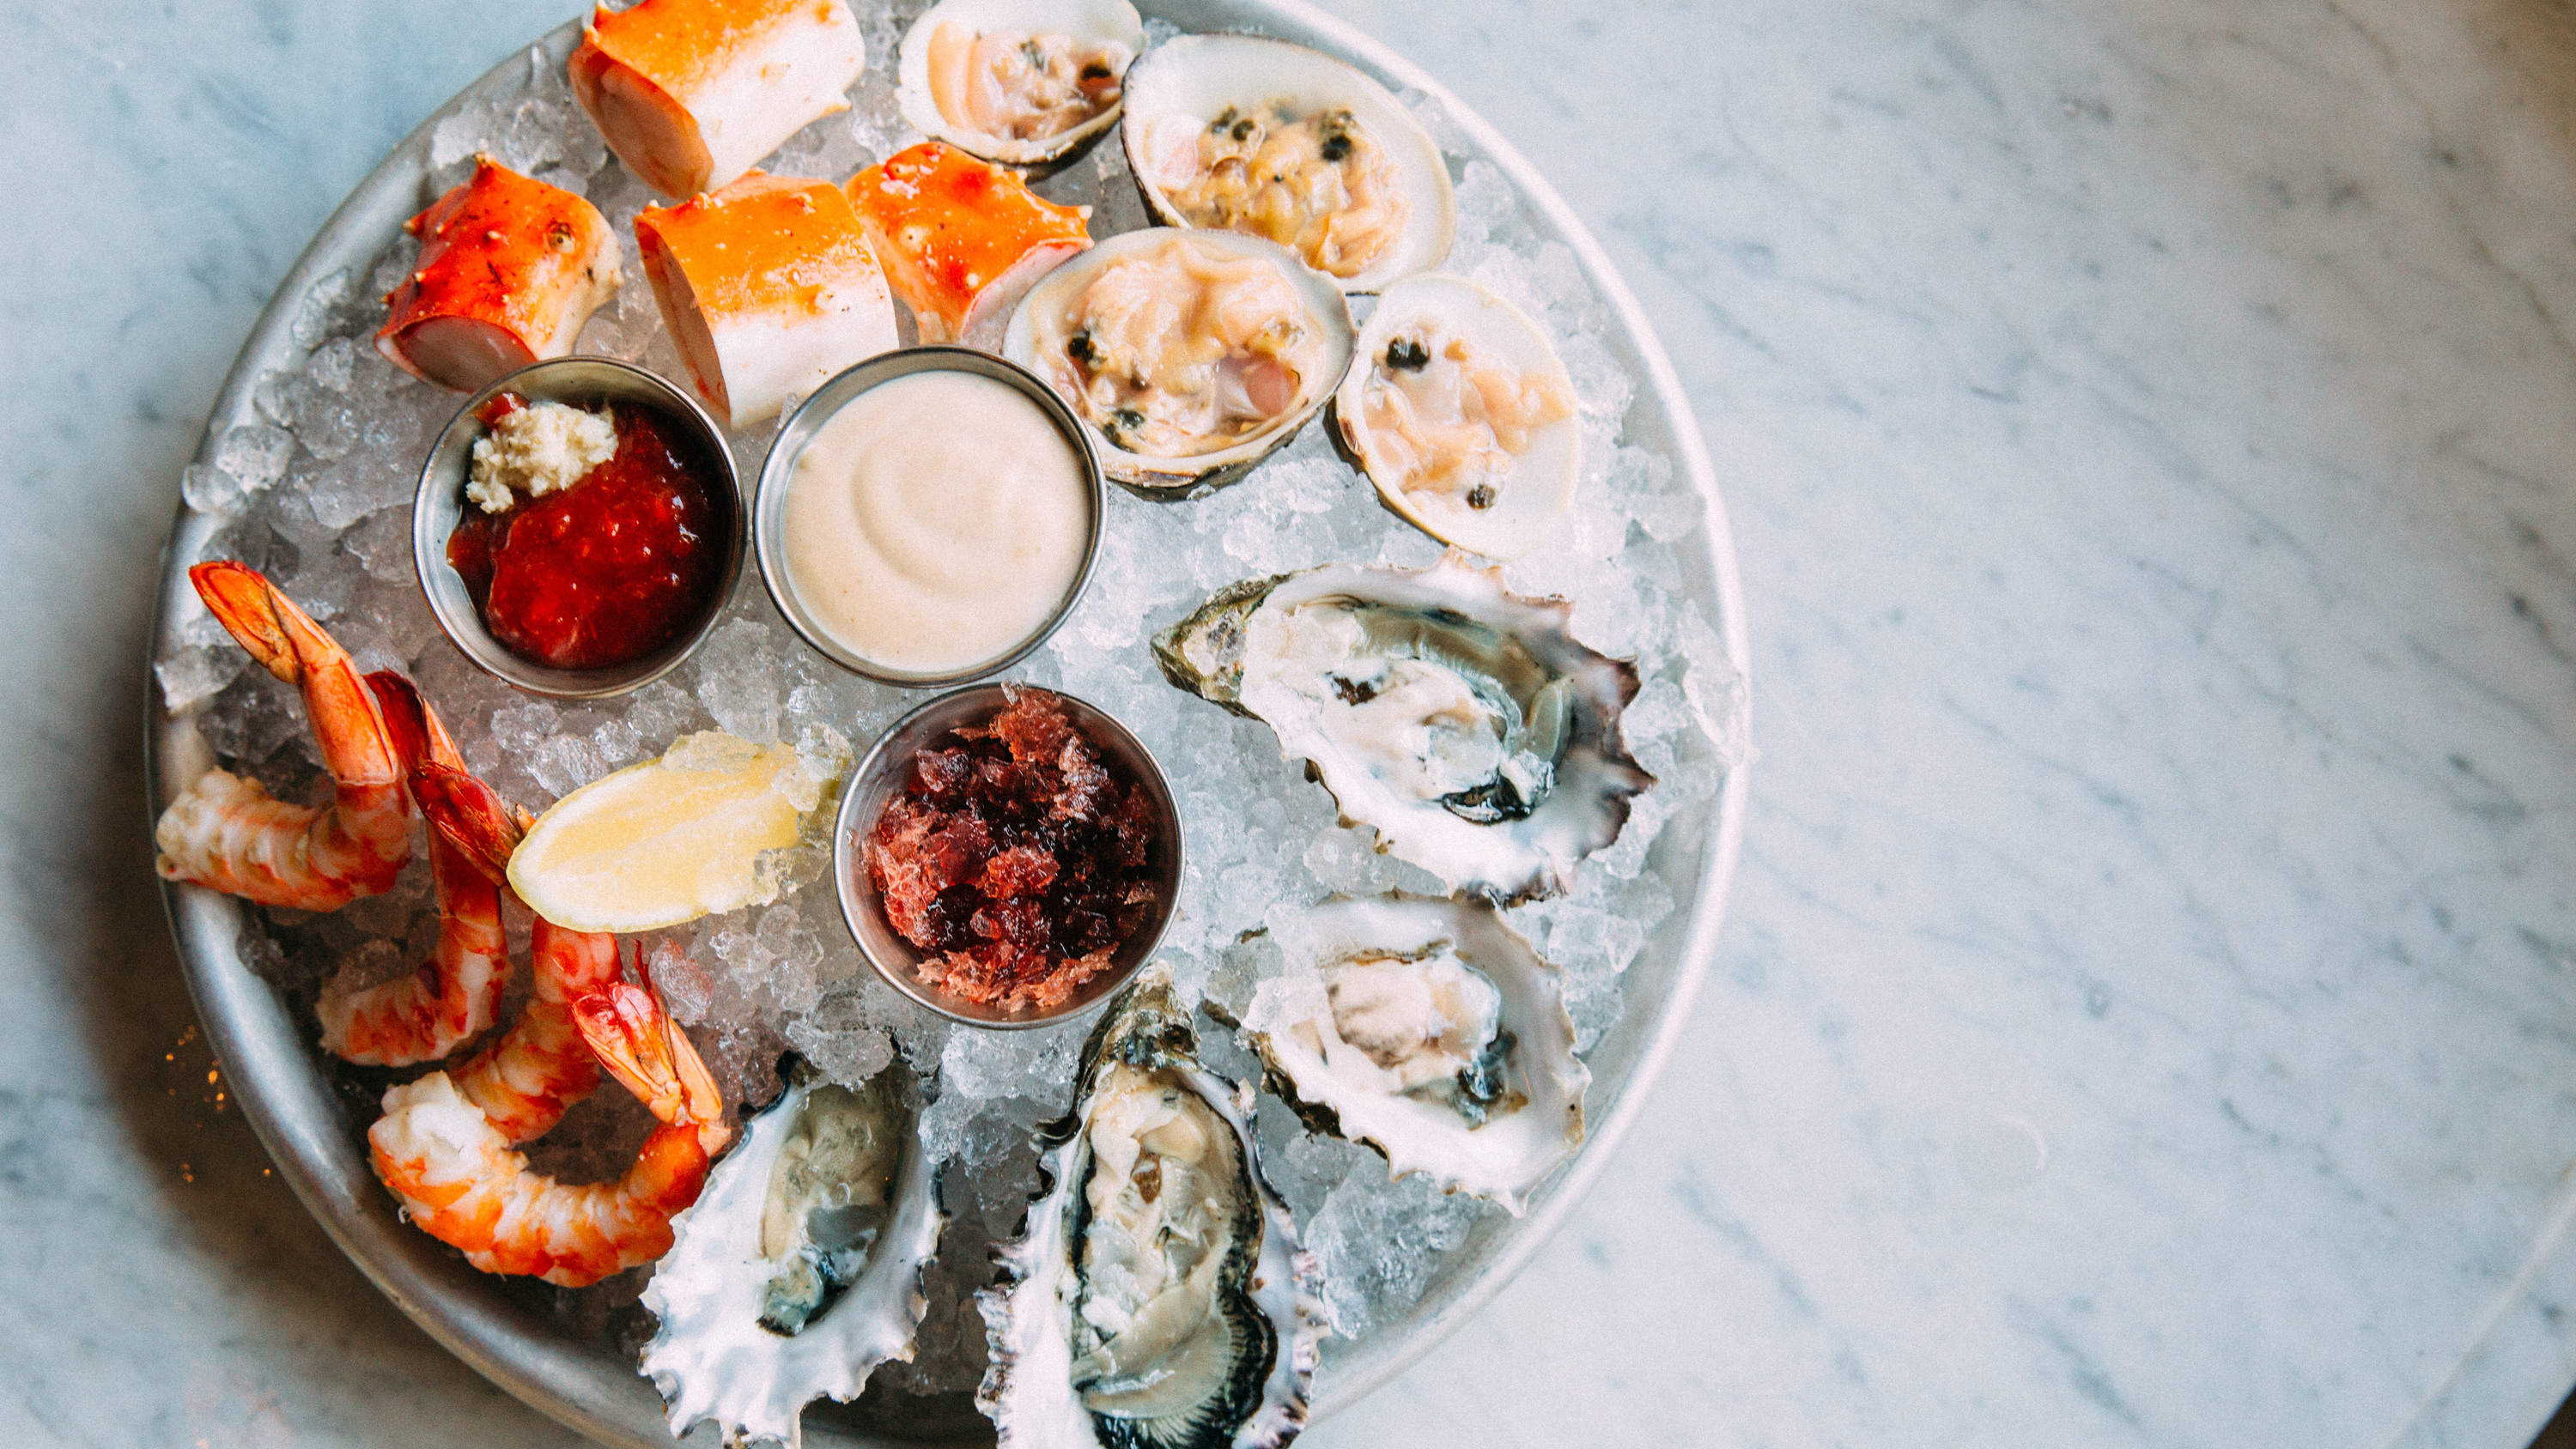 The Best Seafood Restaurants In Chicago